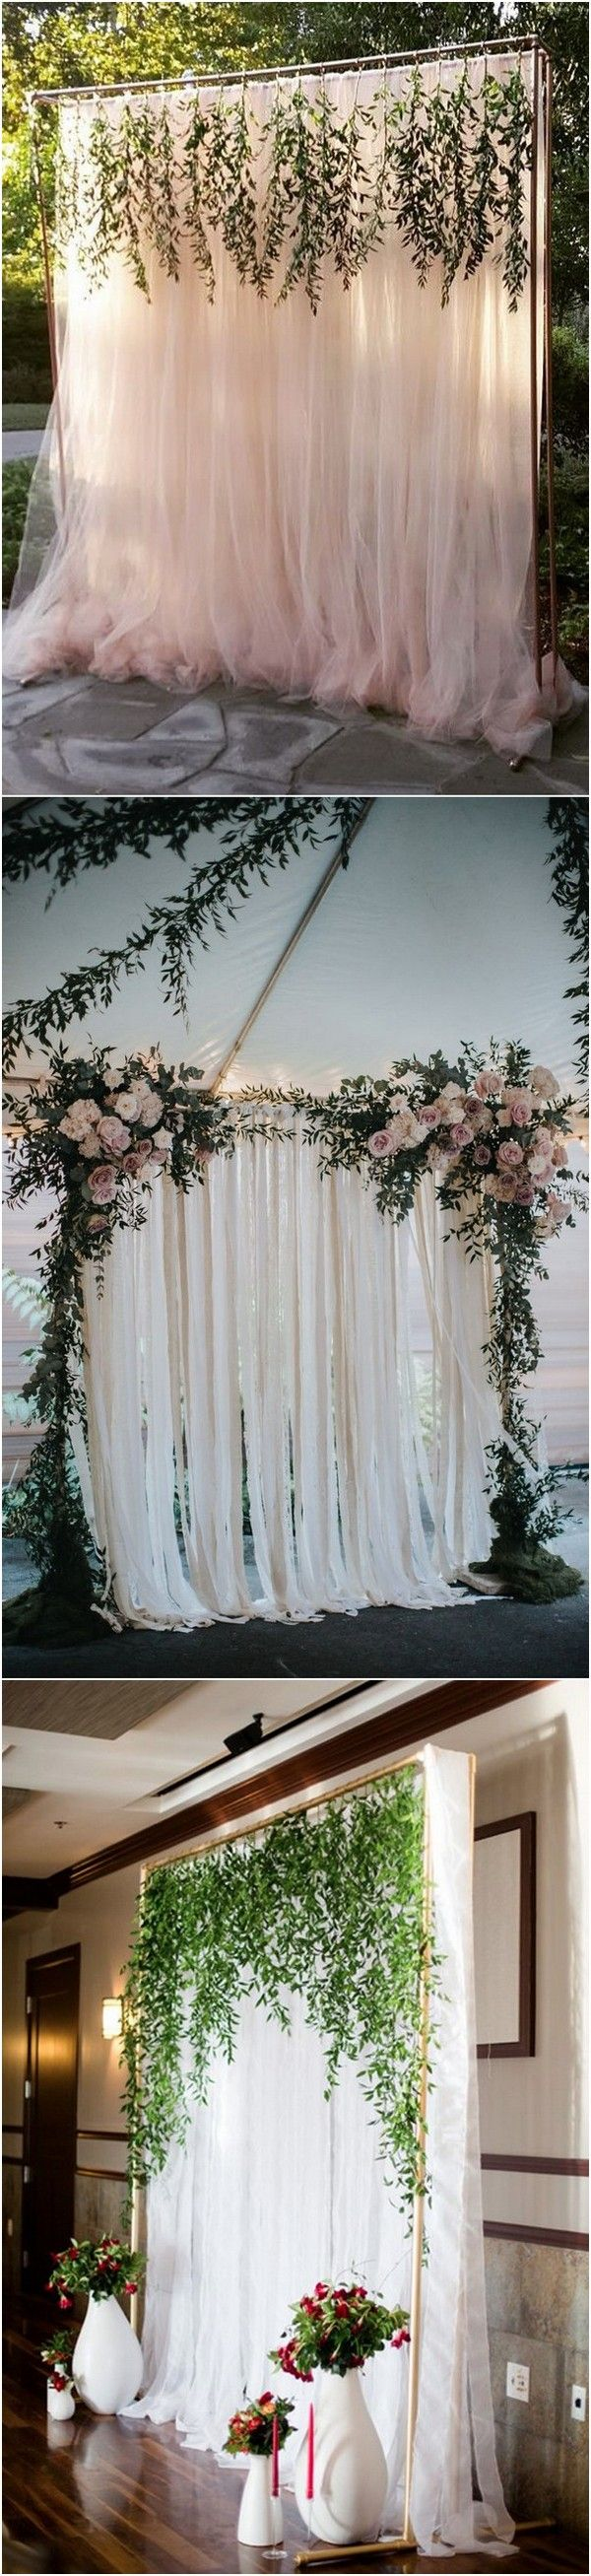 Trending 15 Hottest Wedding Backdrop Ideas for Your Ceremony Page 2 of 3 Outdoor wedding